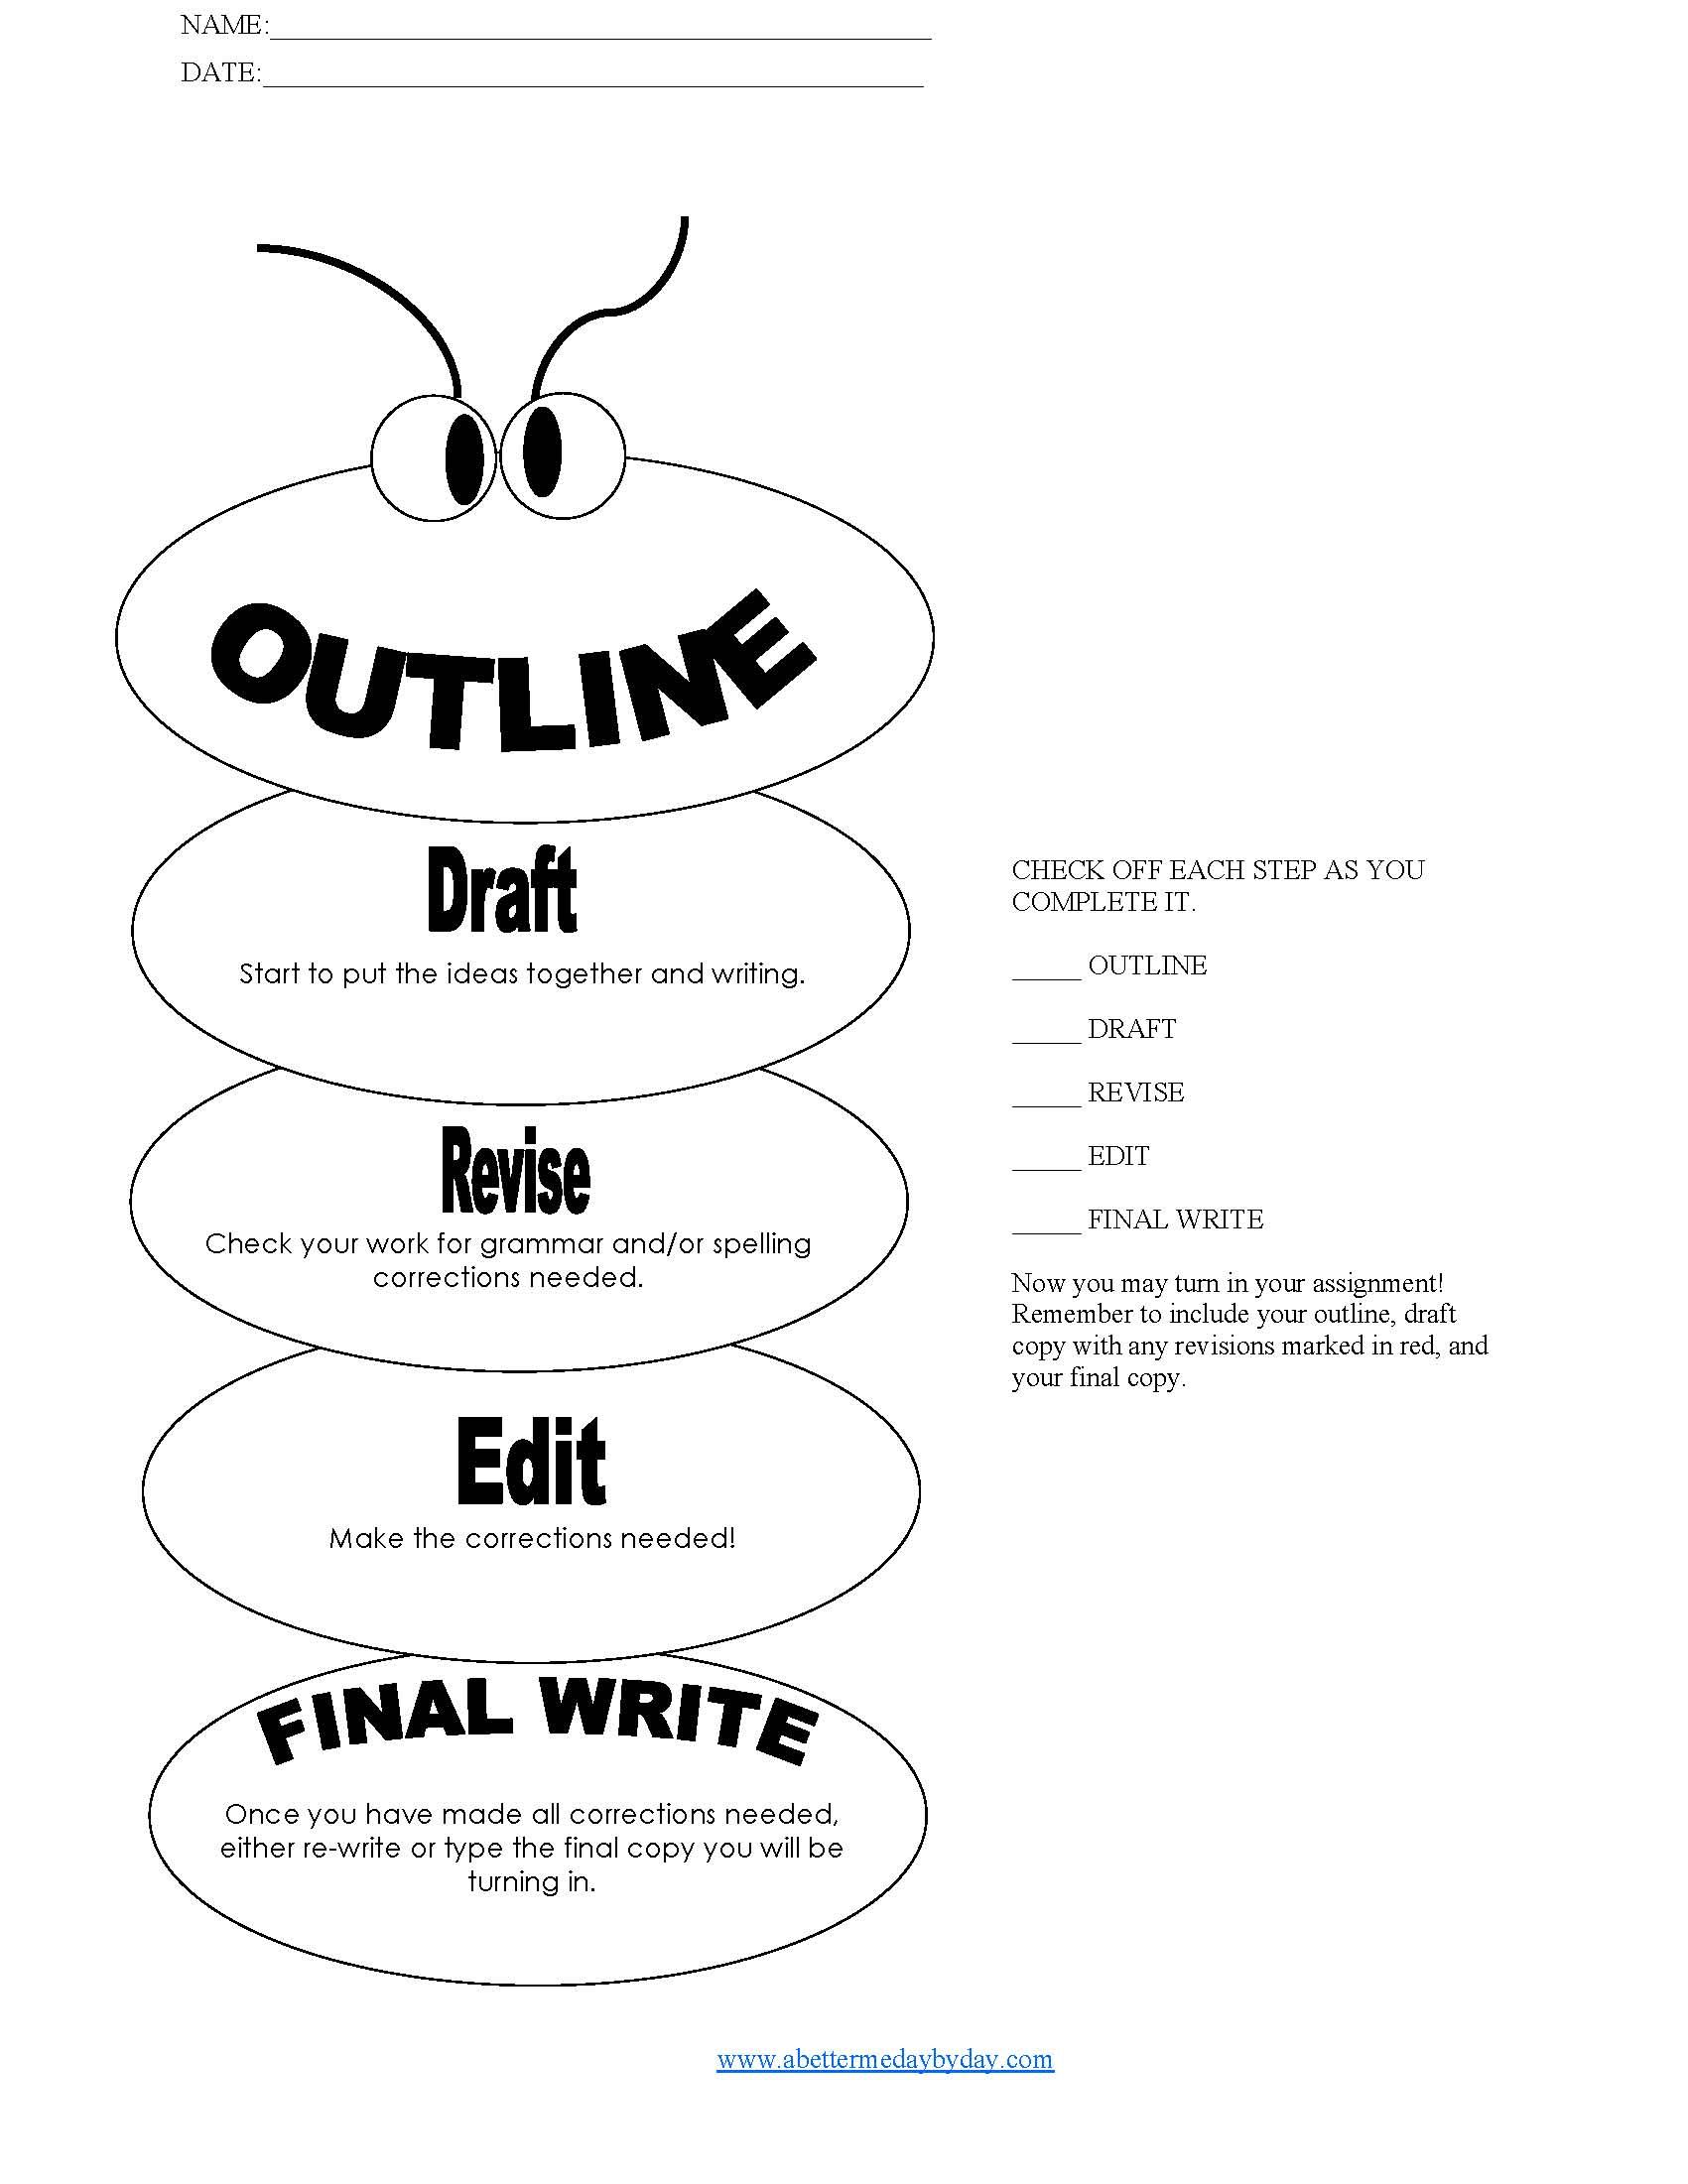 012 Essay Example Process Fantastic Outline Template Pdf Full